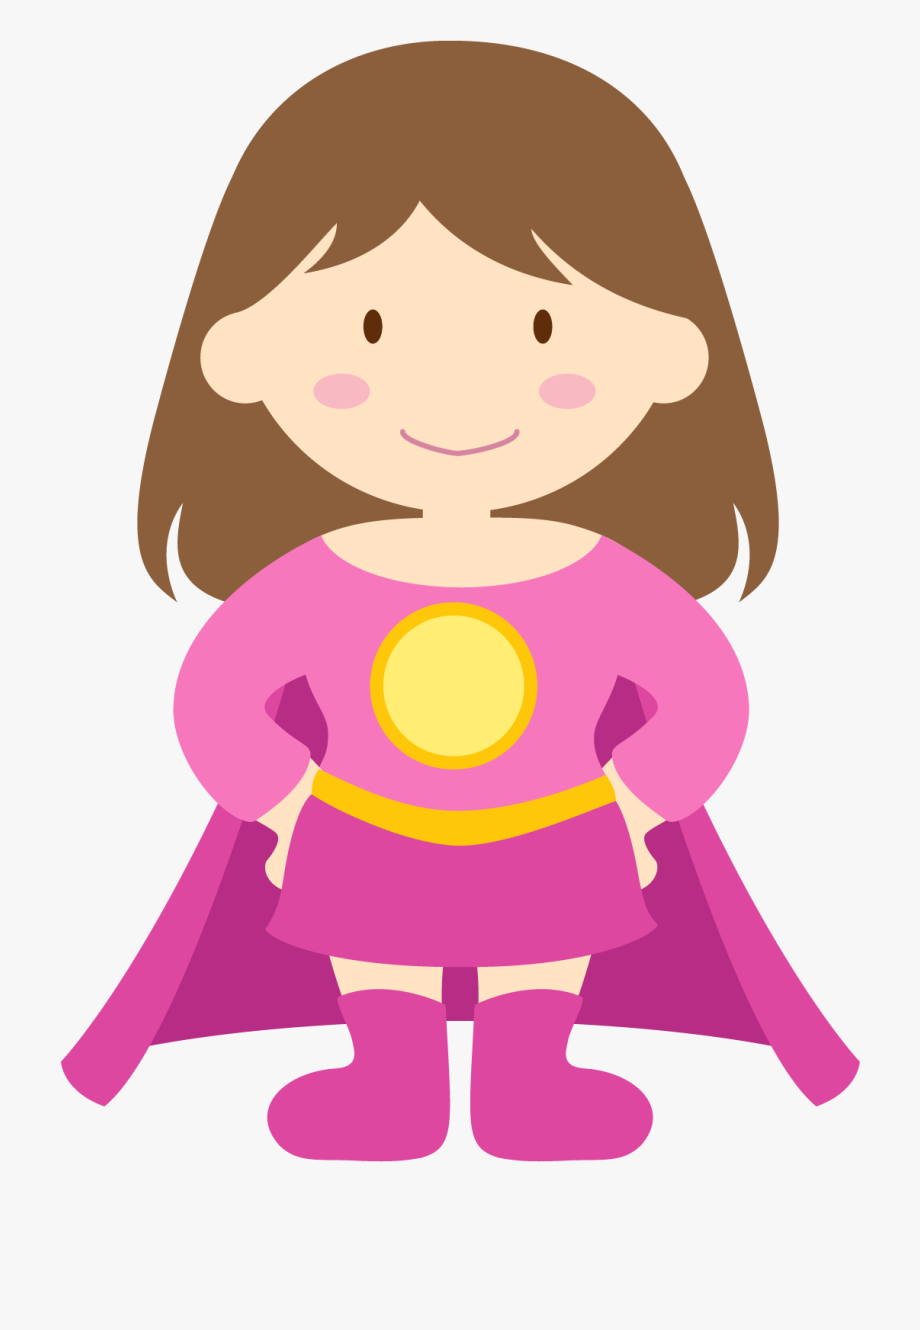 clipart Kids png free cliparts. Superhero kid clipart